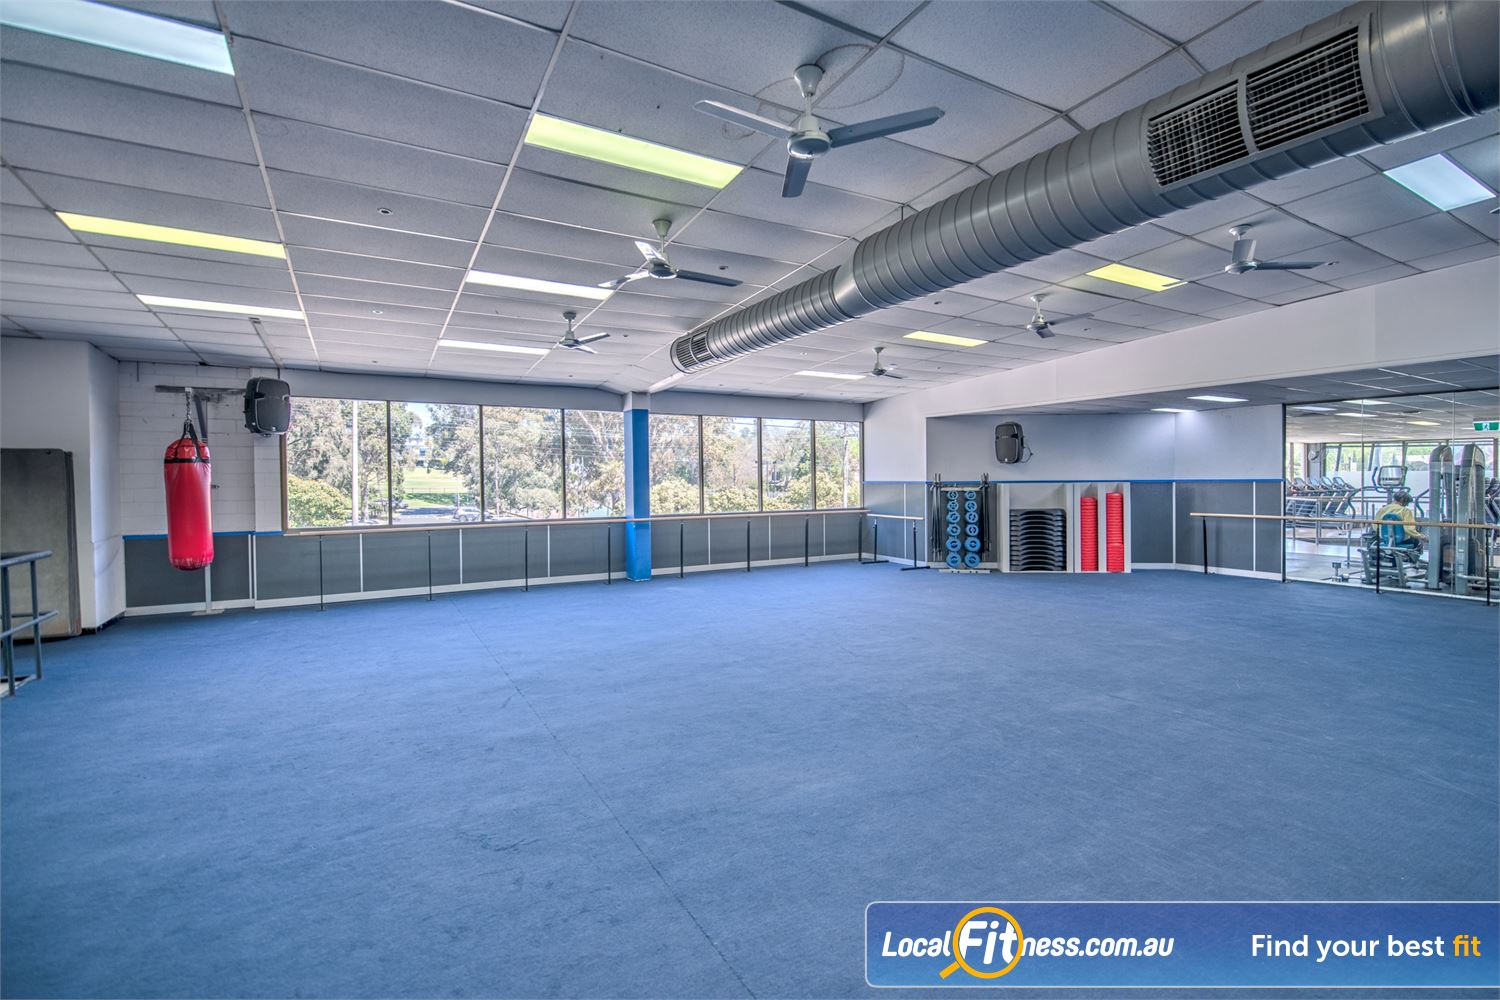 Goodlife Health Clubs Near Balwyn North Our group fitness selection includes Balwyn Yoga, Pilates, Zumba and more.